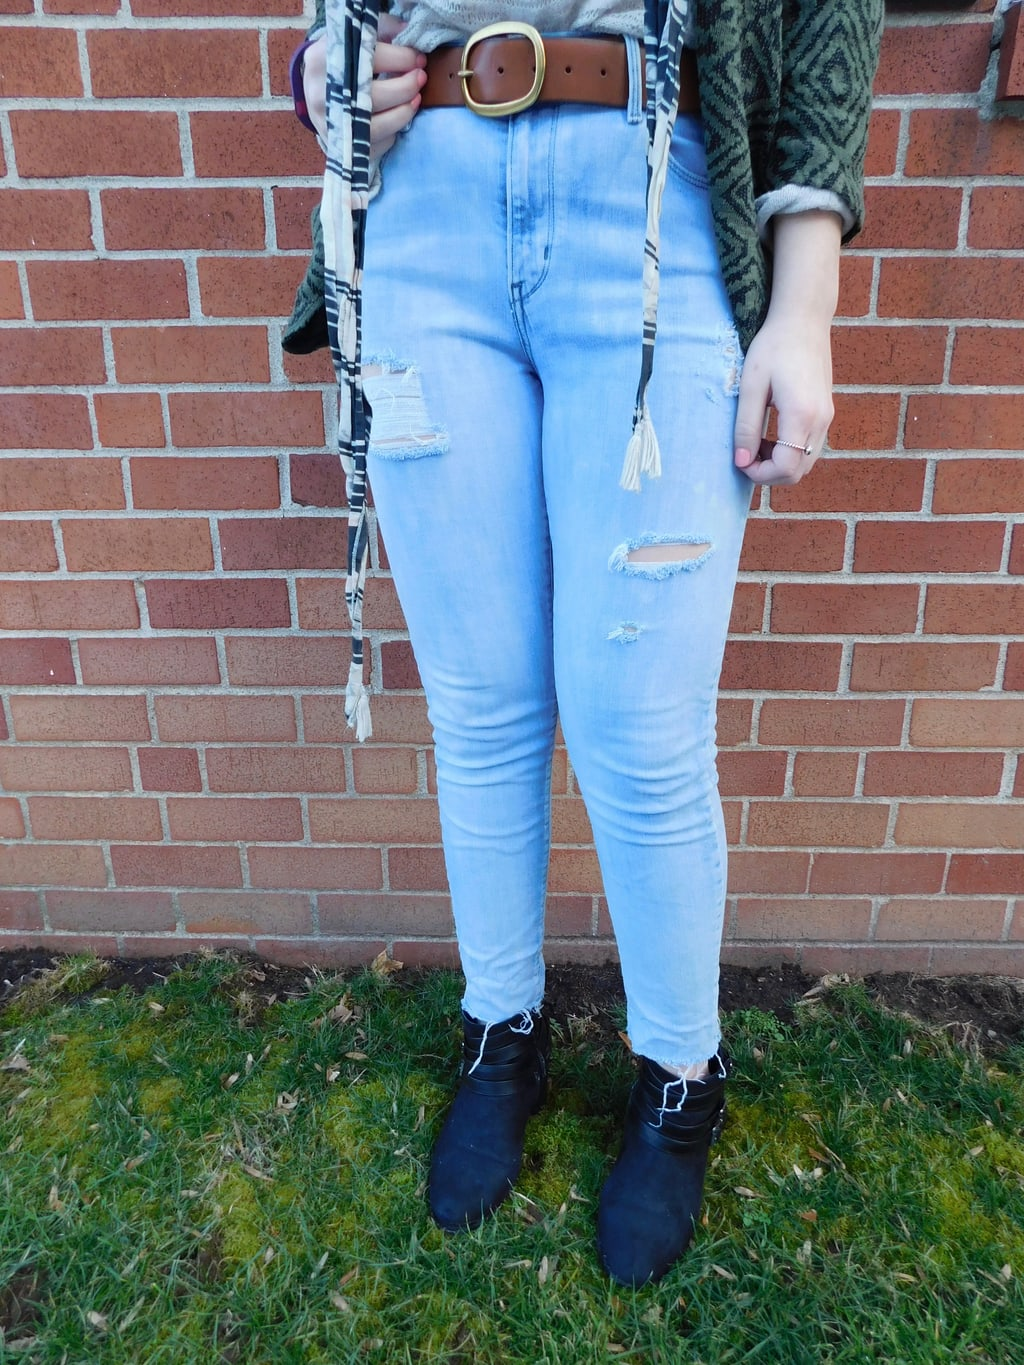 Lauren's light-wash, high waisted distressed denim jeans are held up by a thick brown belt with a gold buckle.